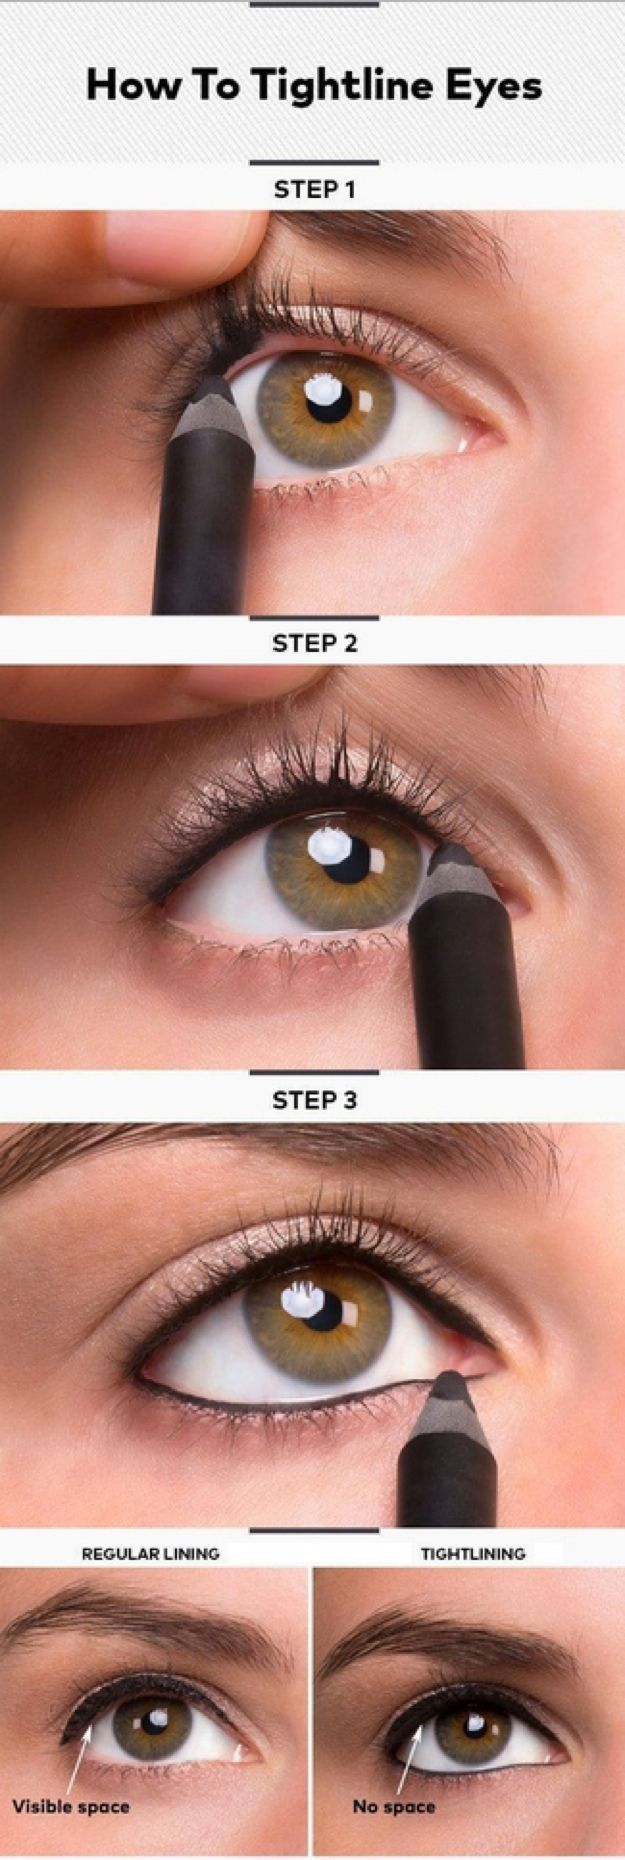 Eyeliner Tips and Tricks for A Perfect Tightline Eyeliner Look by Makeup Tutoria...